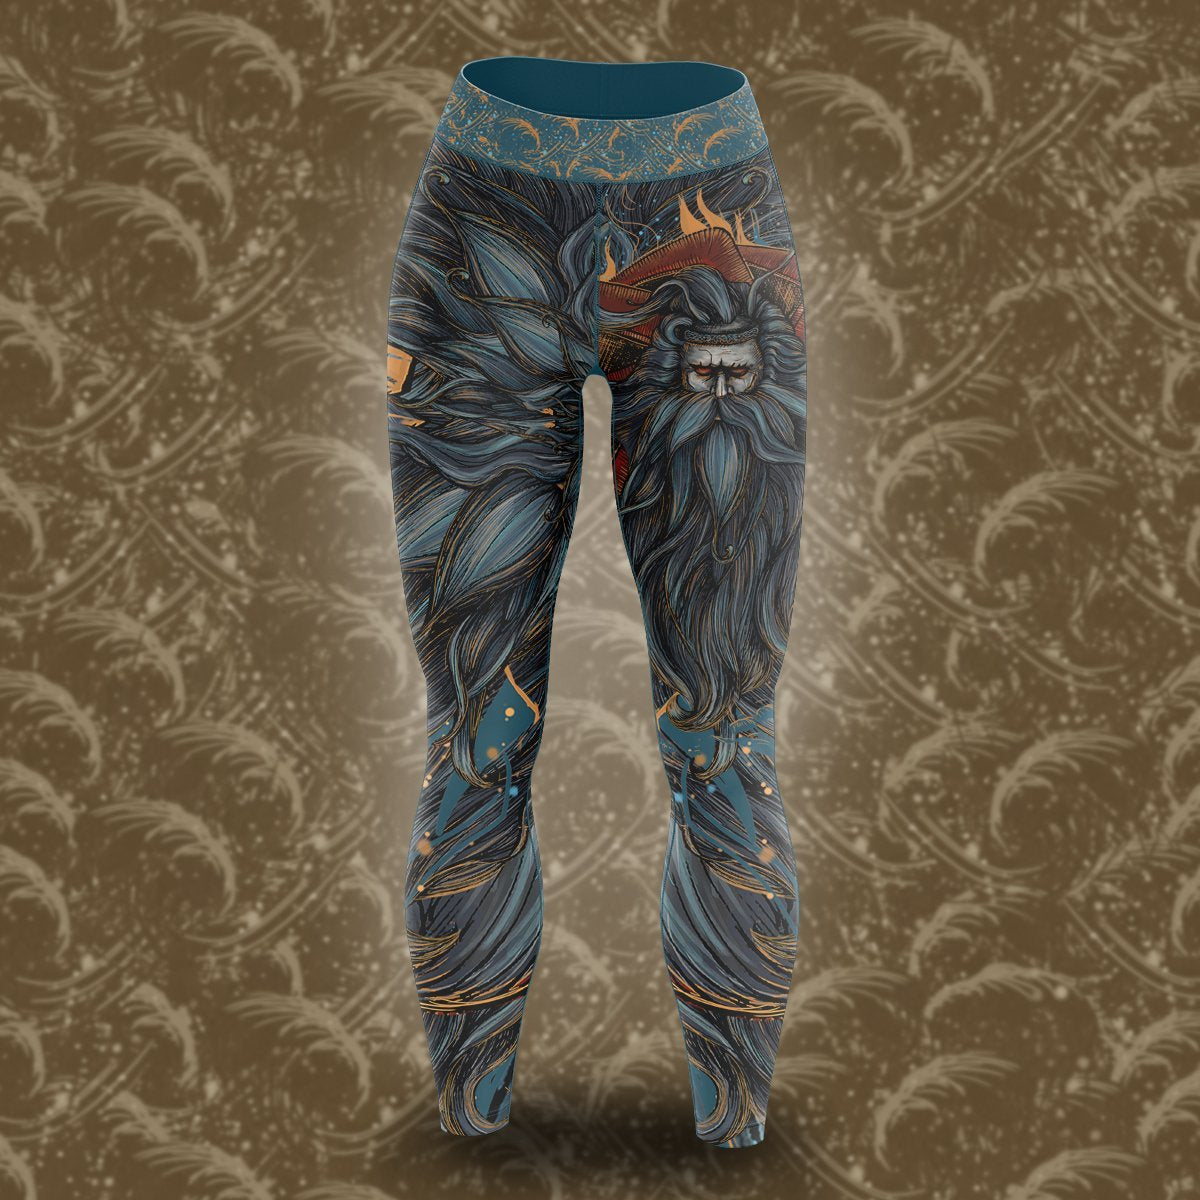 Svarog Unisex Tights S Leggings